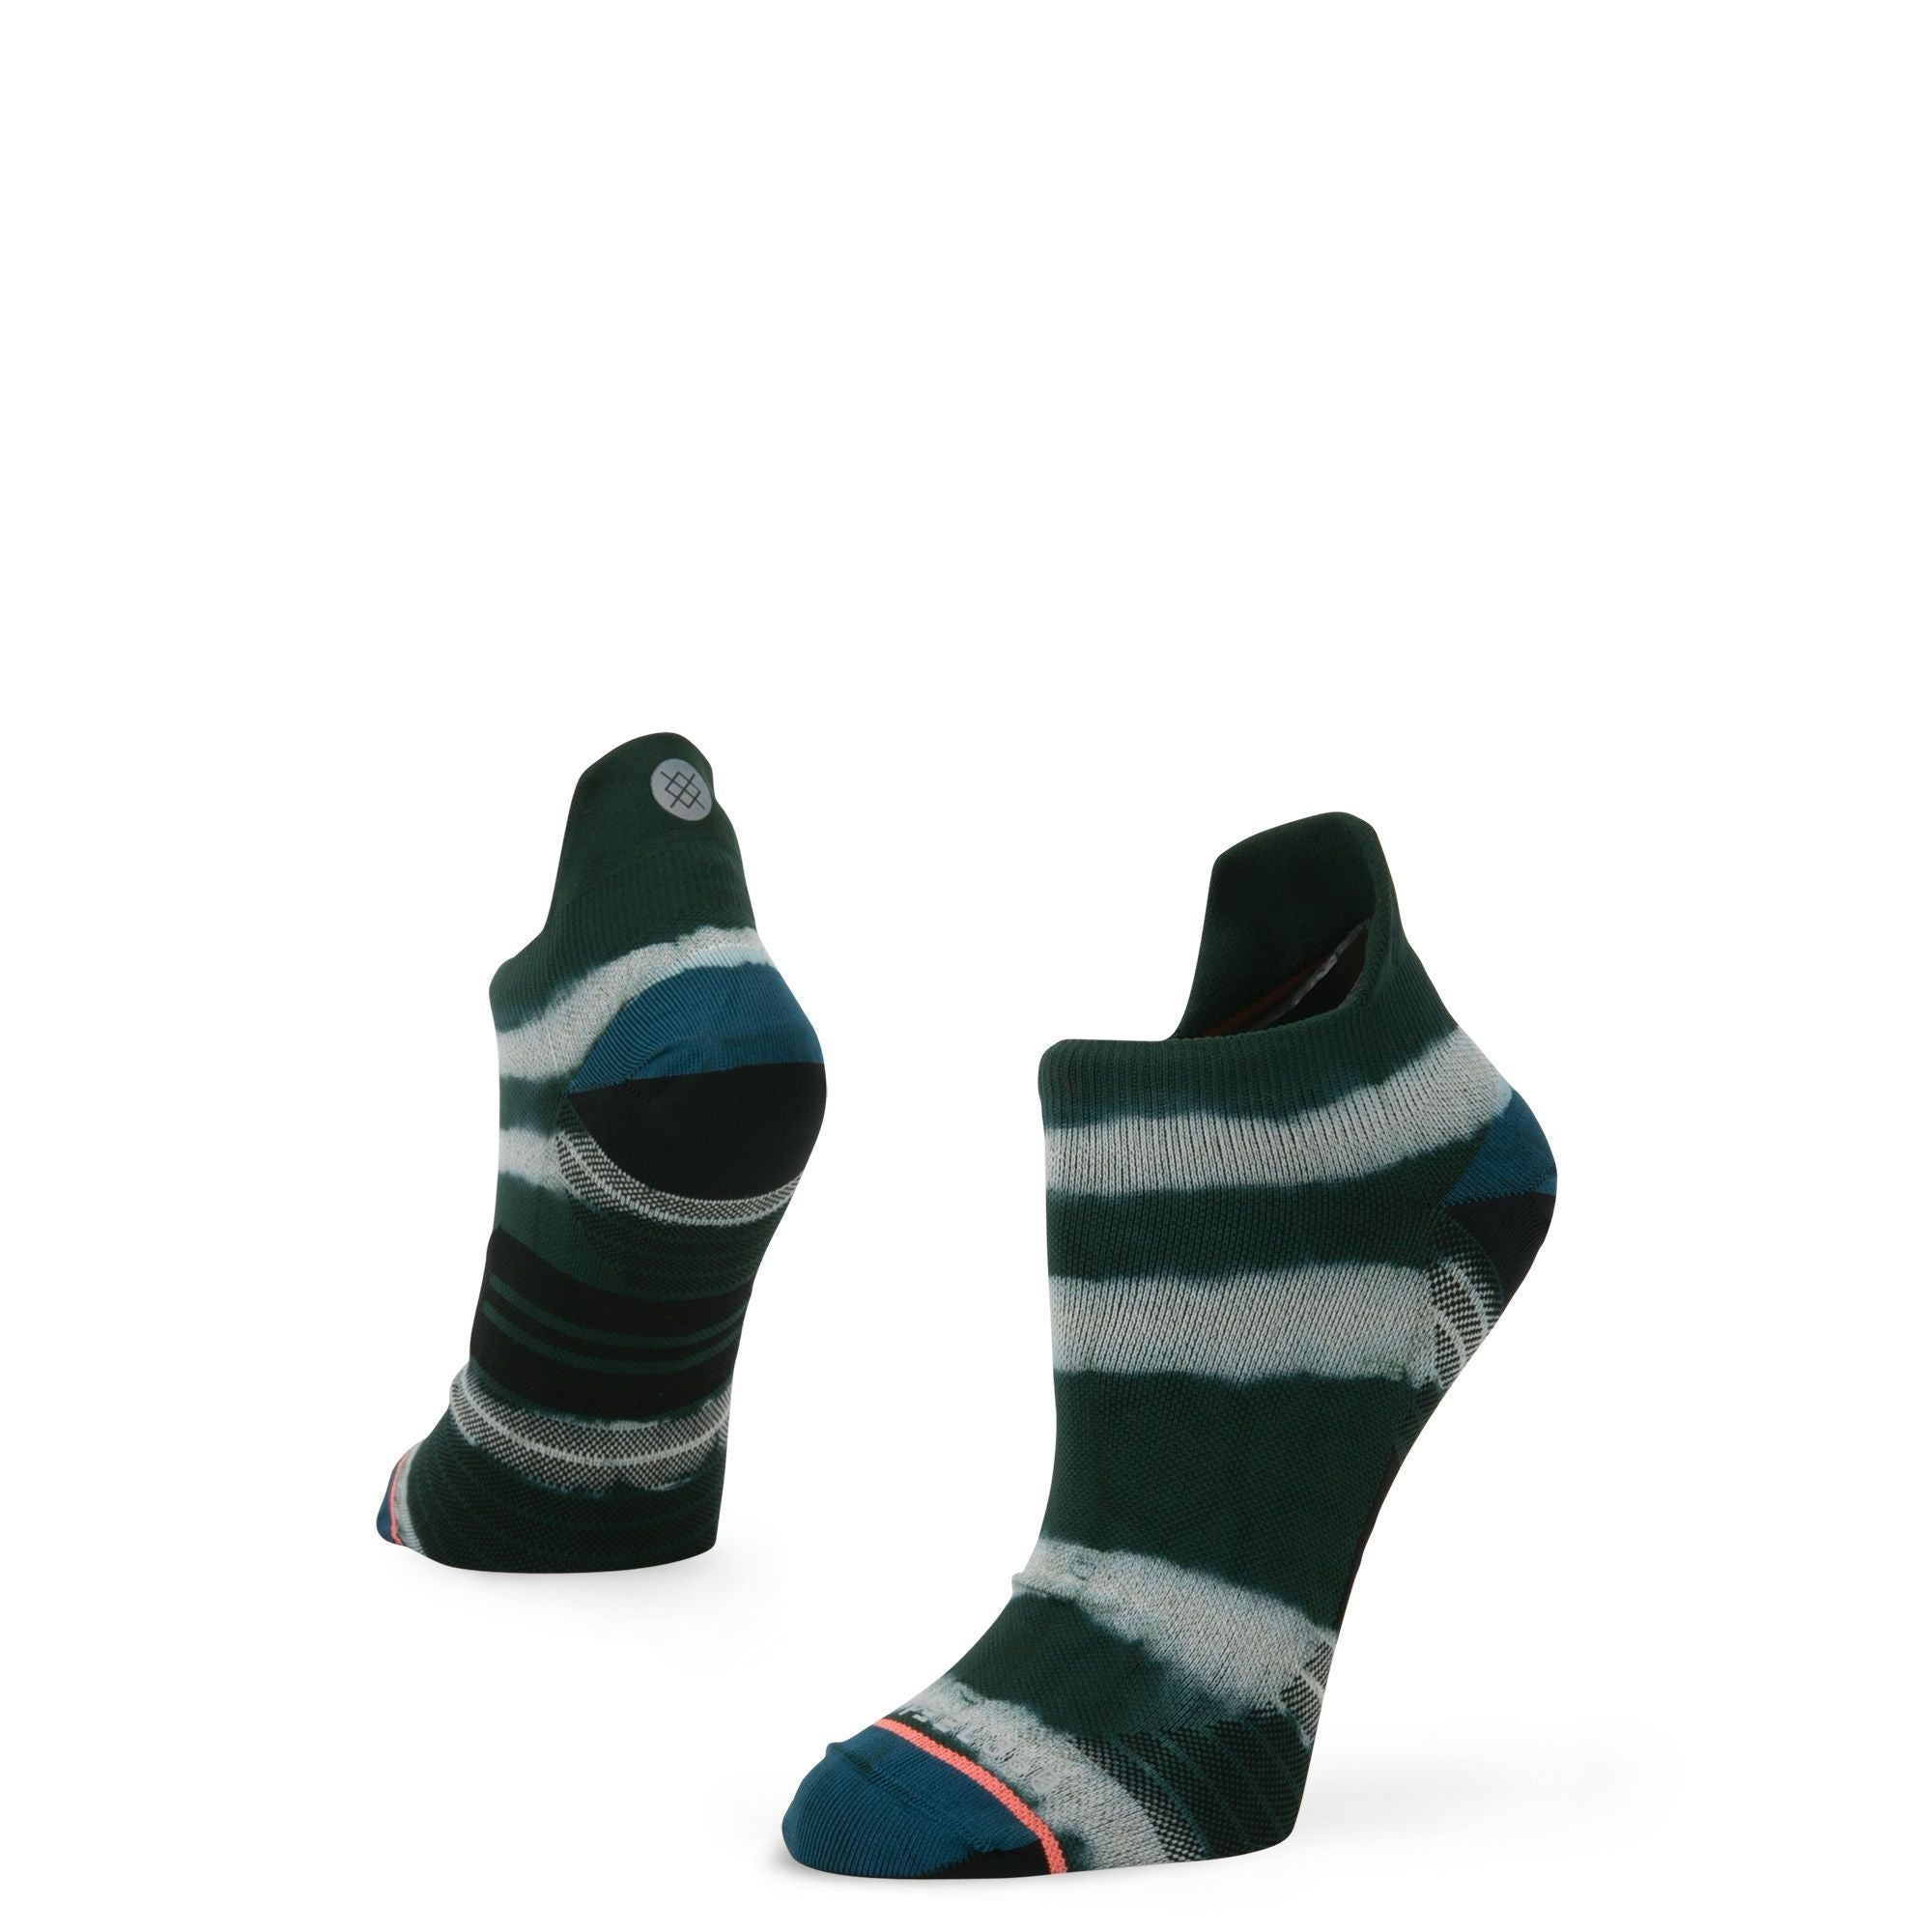 stance downhill run tab socks Size Small 5-7.5